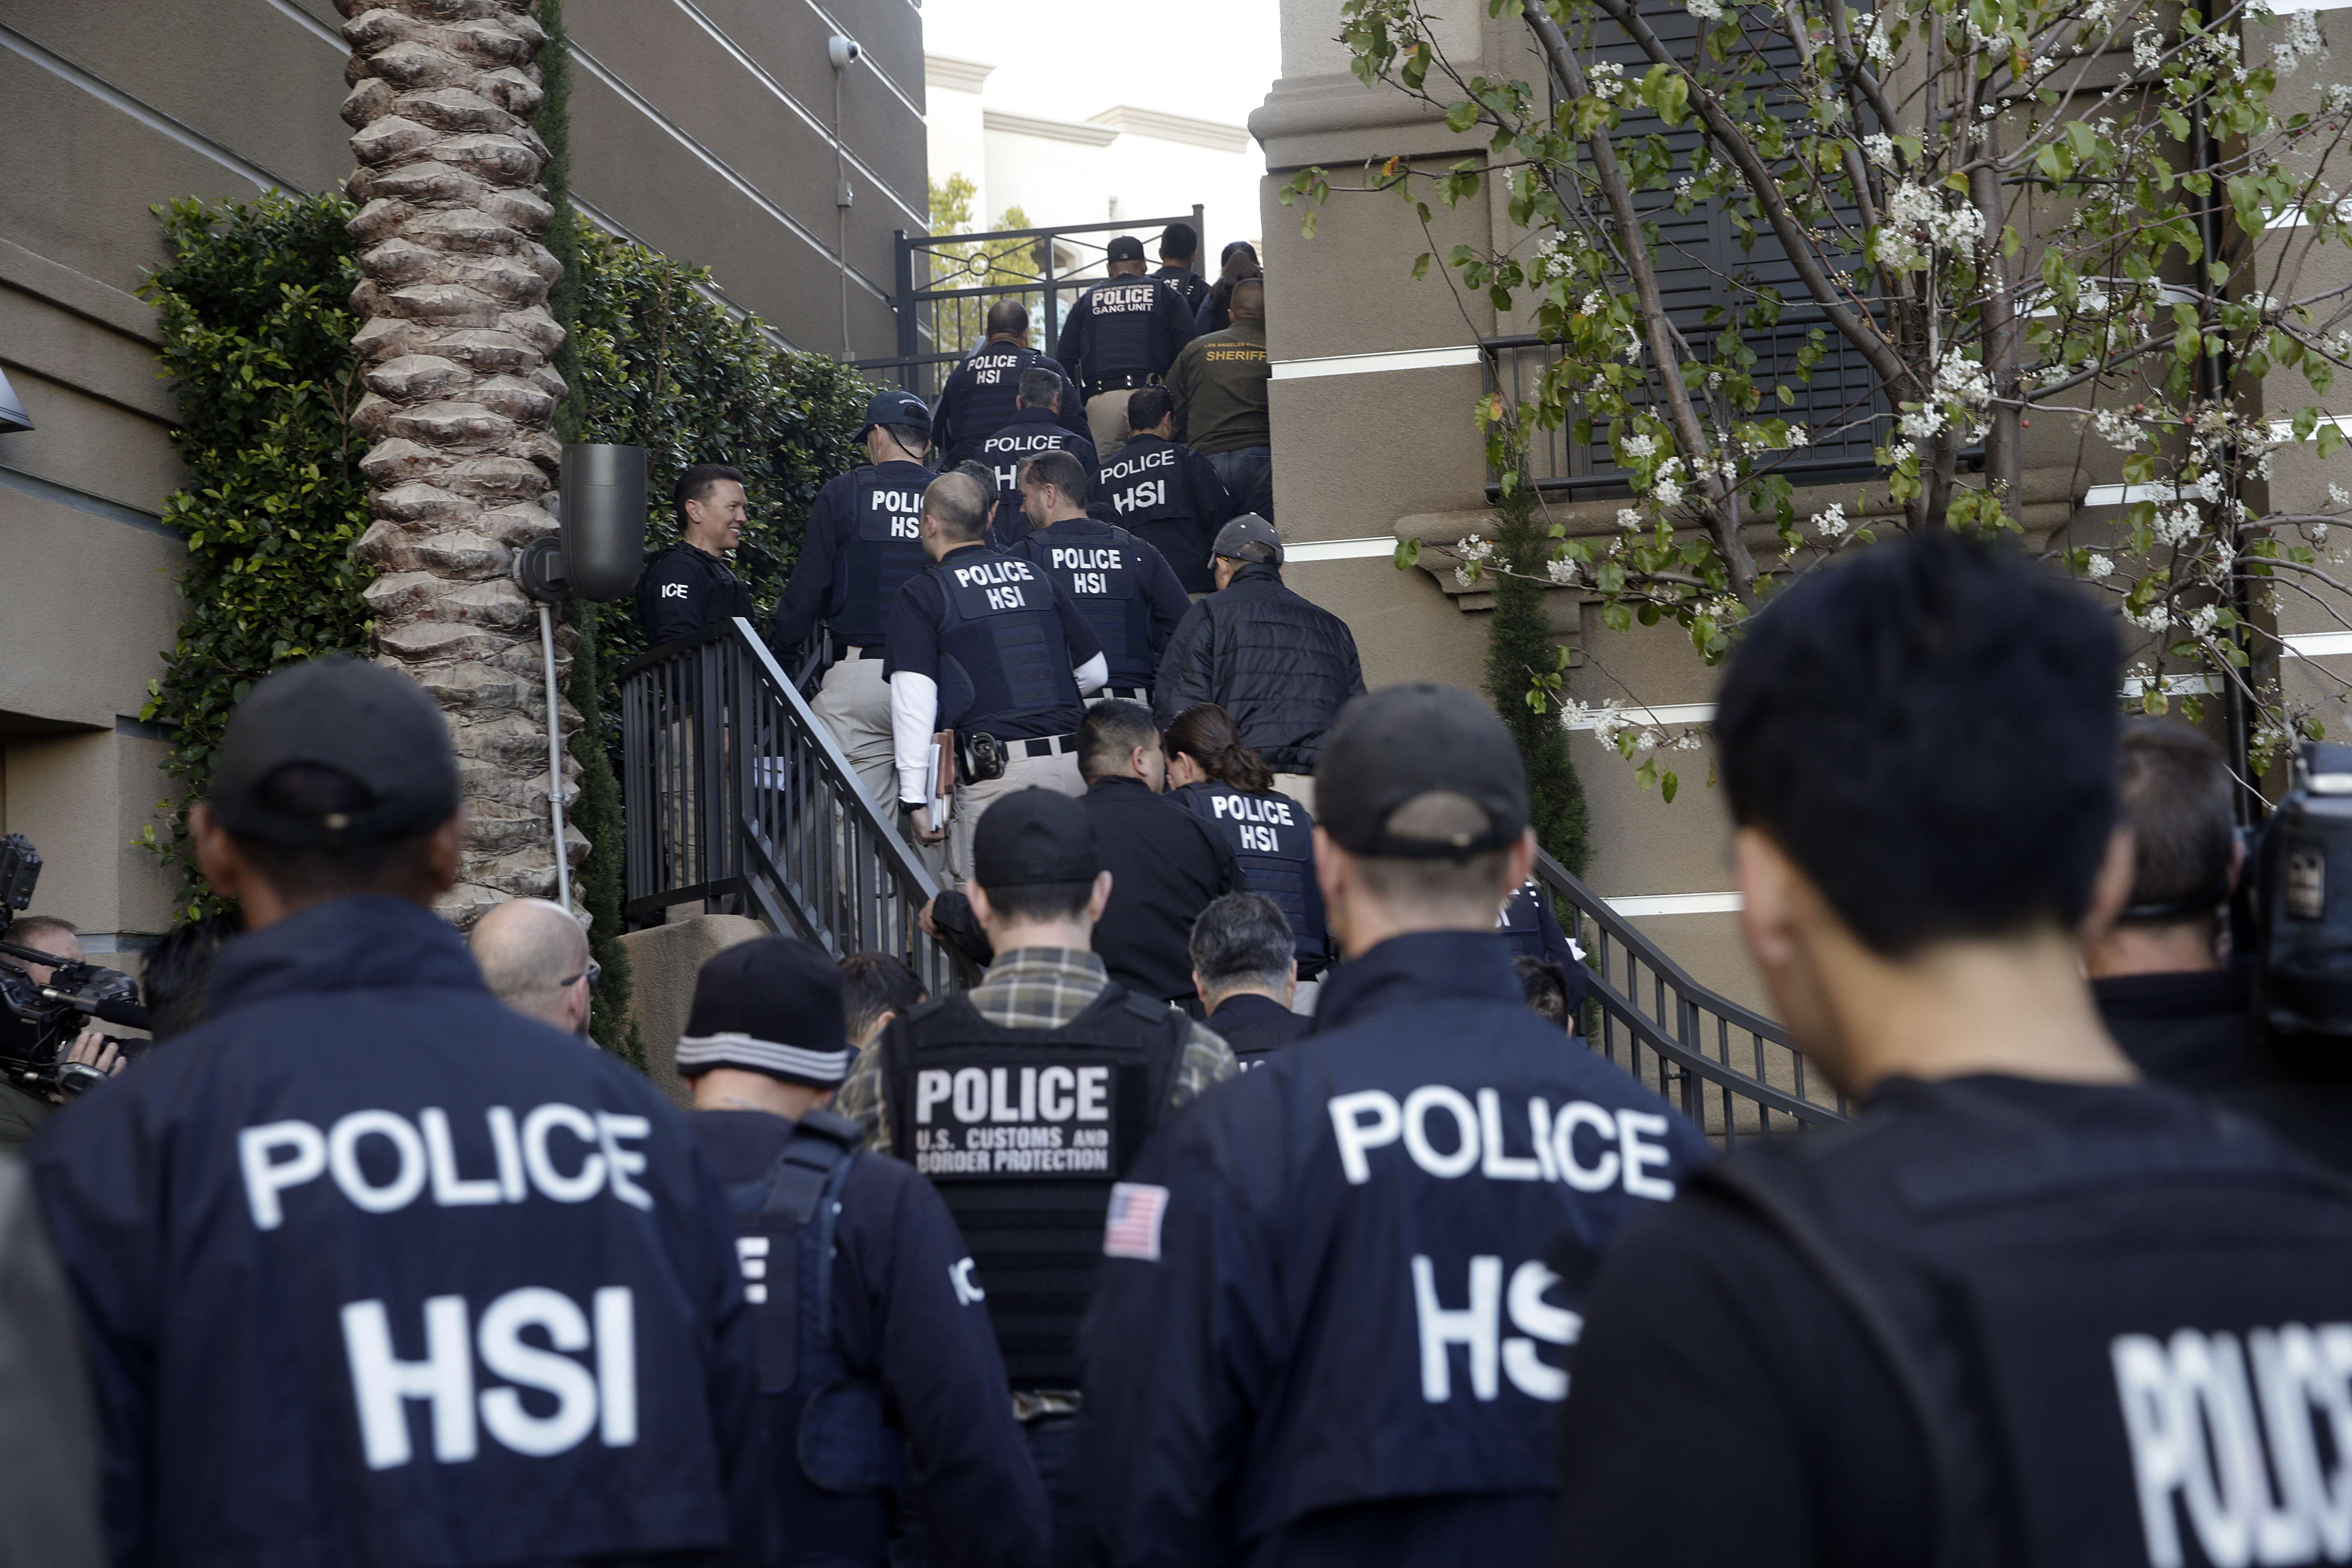 US charges 20 people over Chinese birth tourism schemes